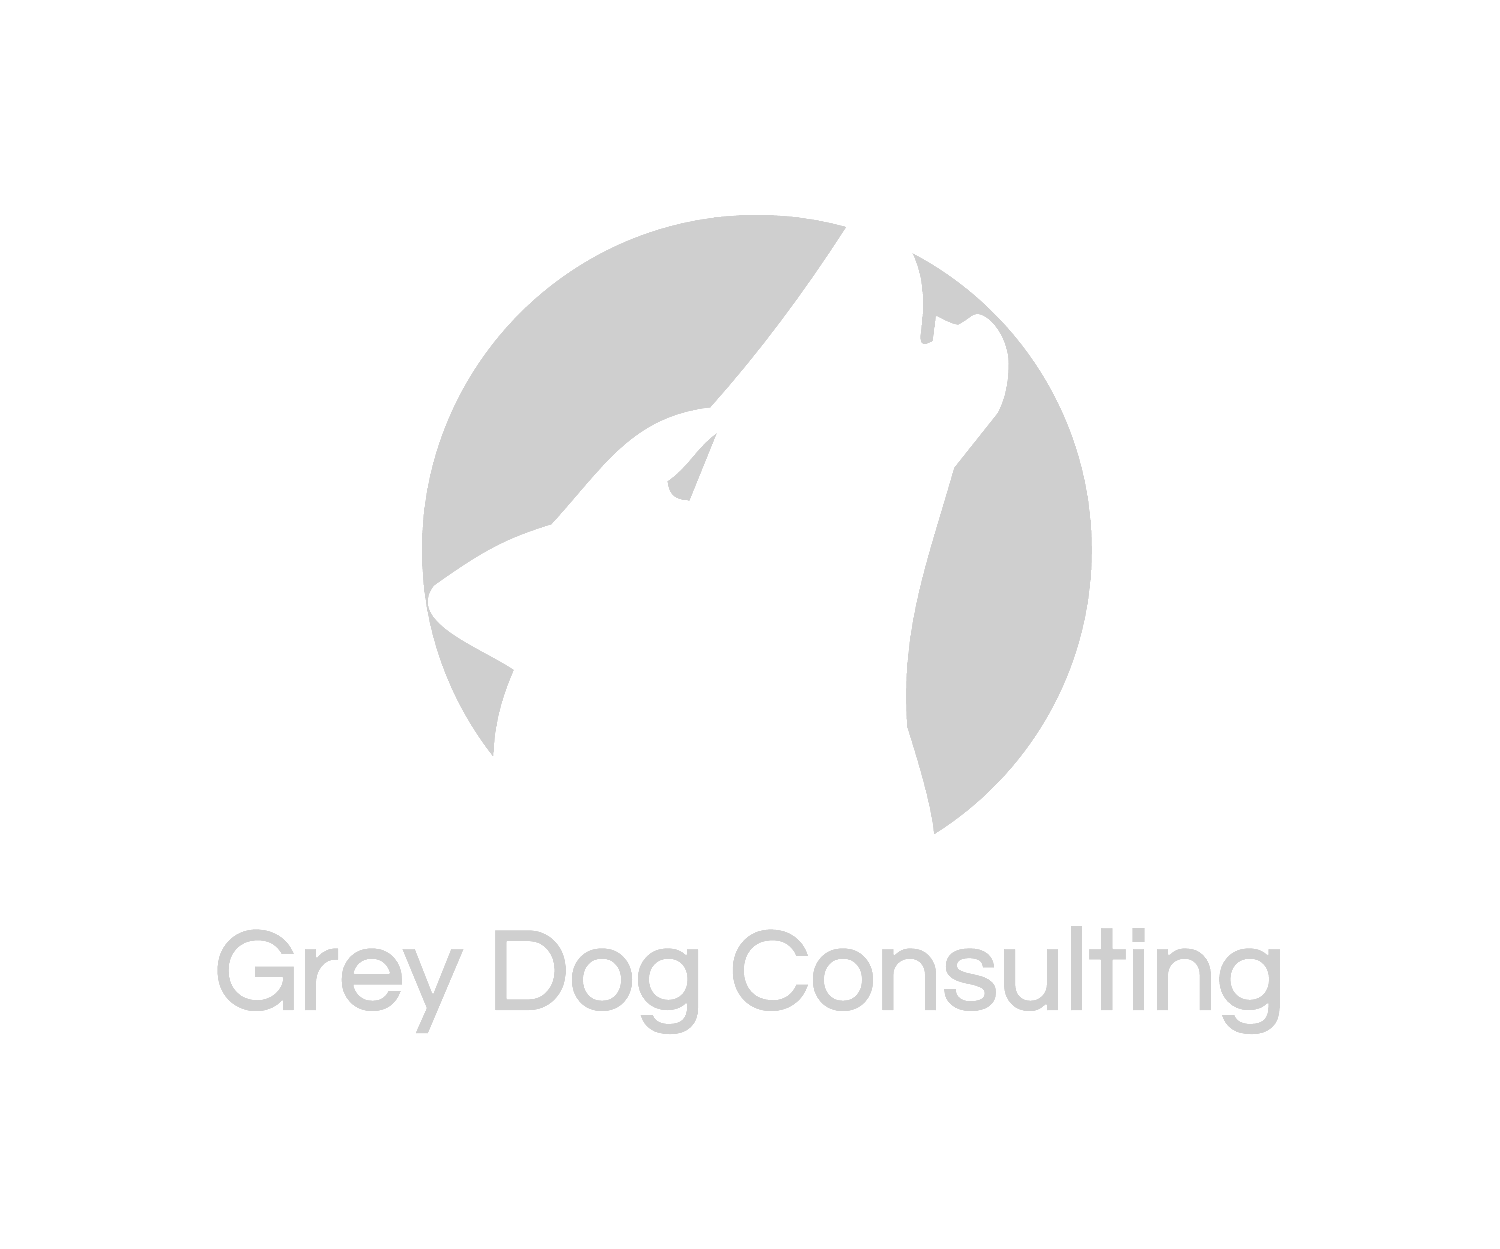 Grey Dog Consulting